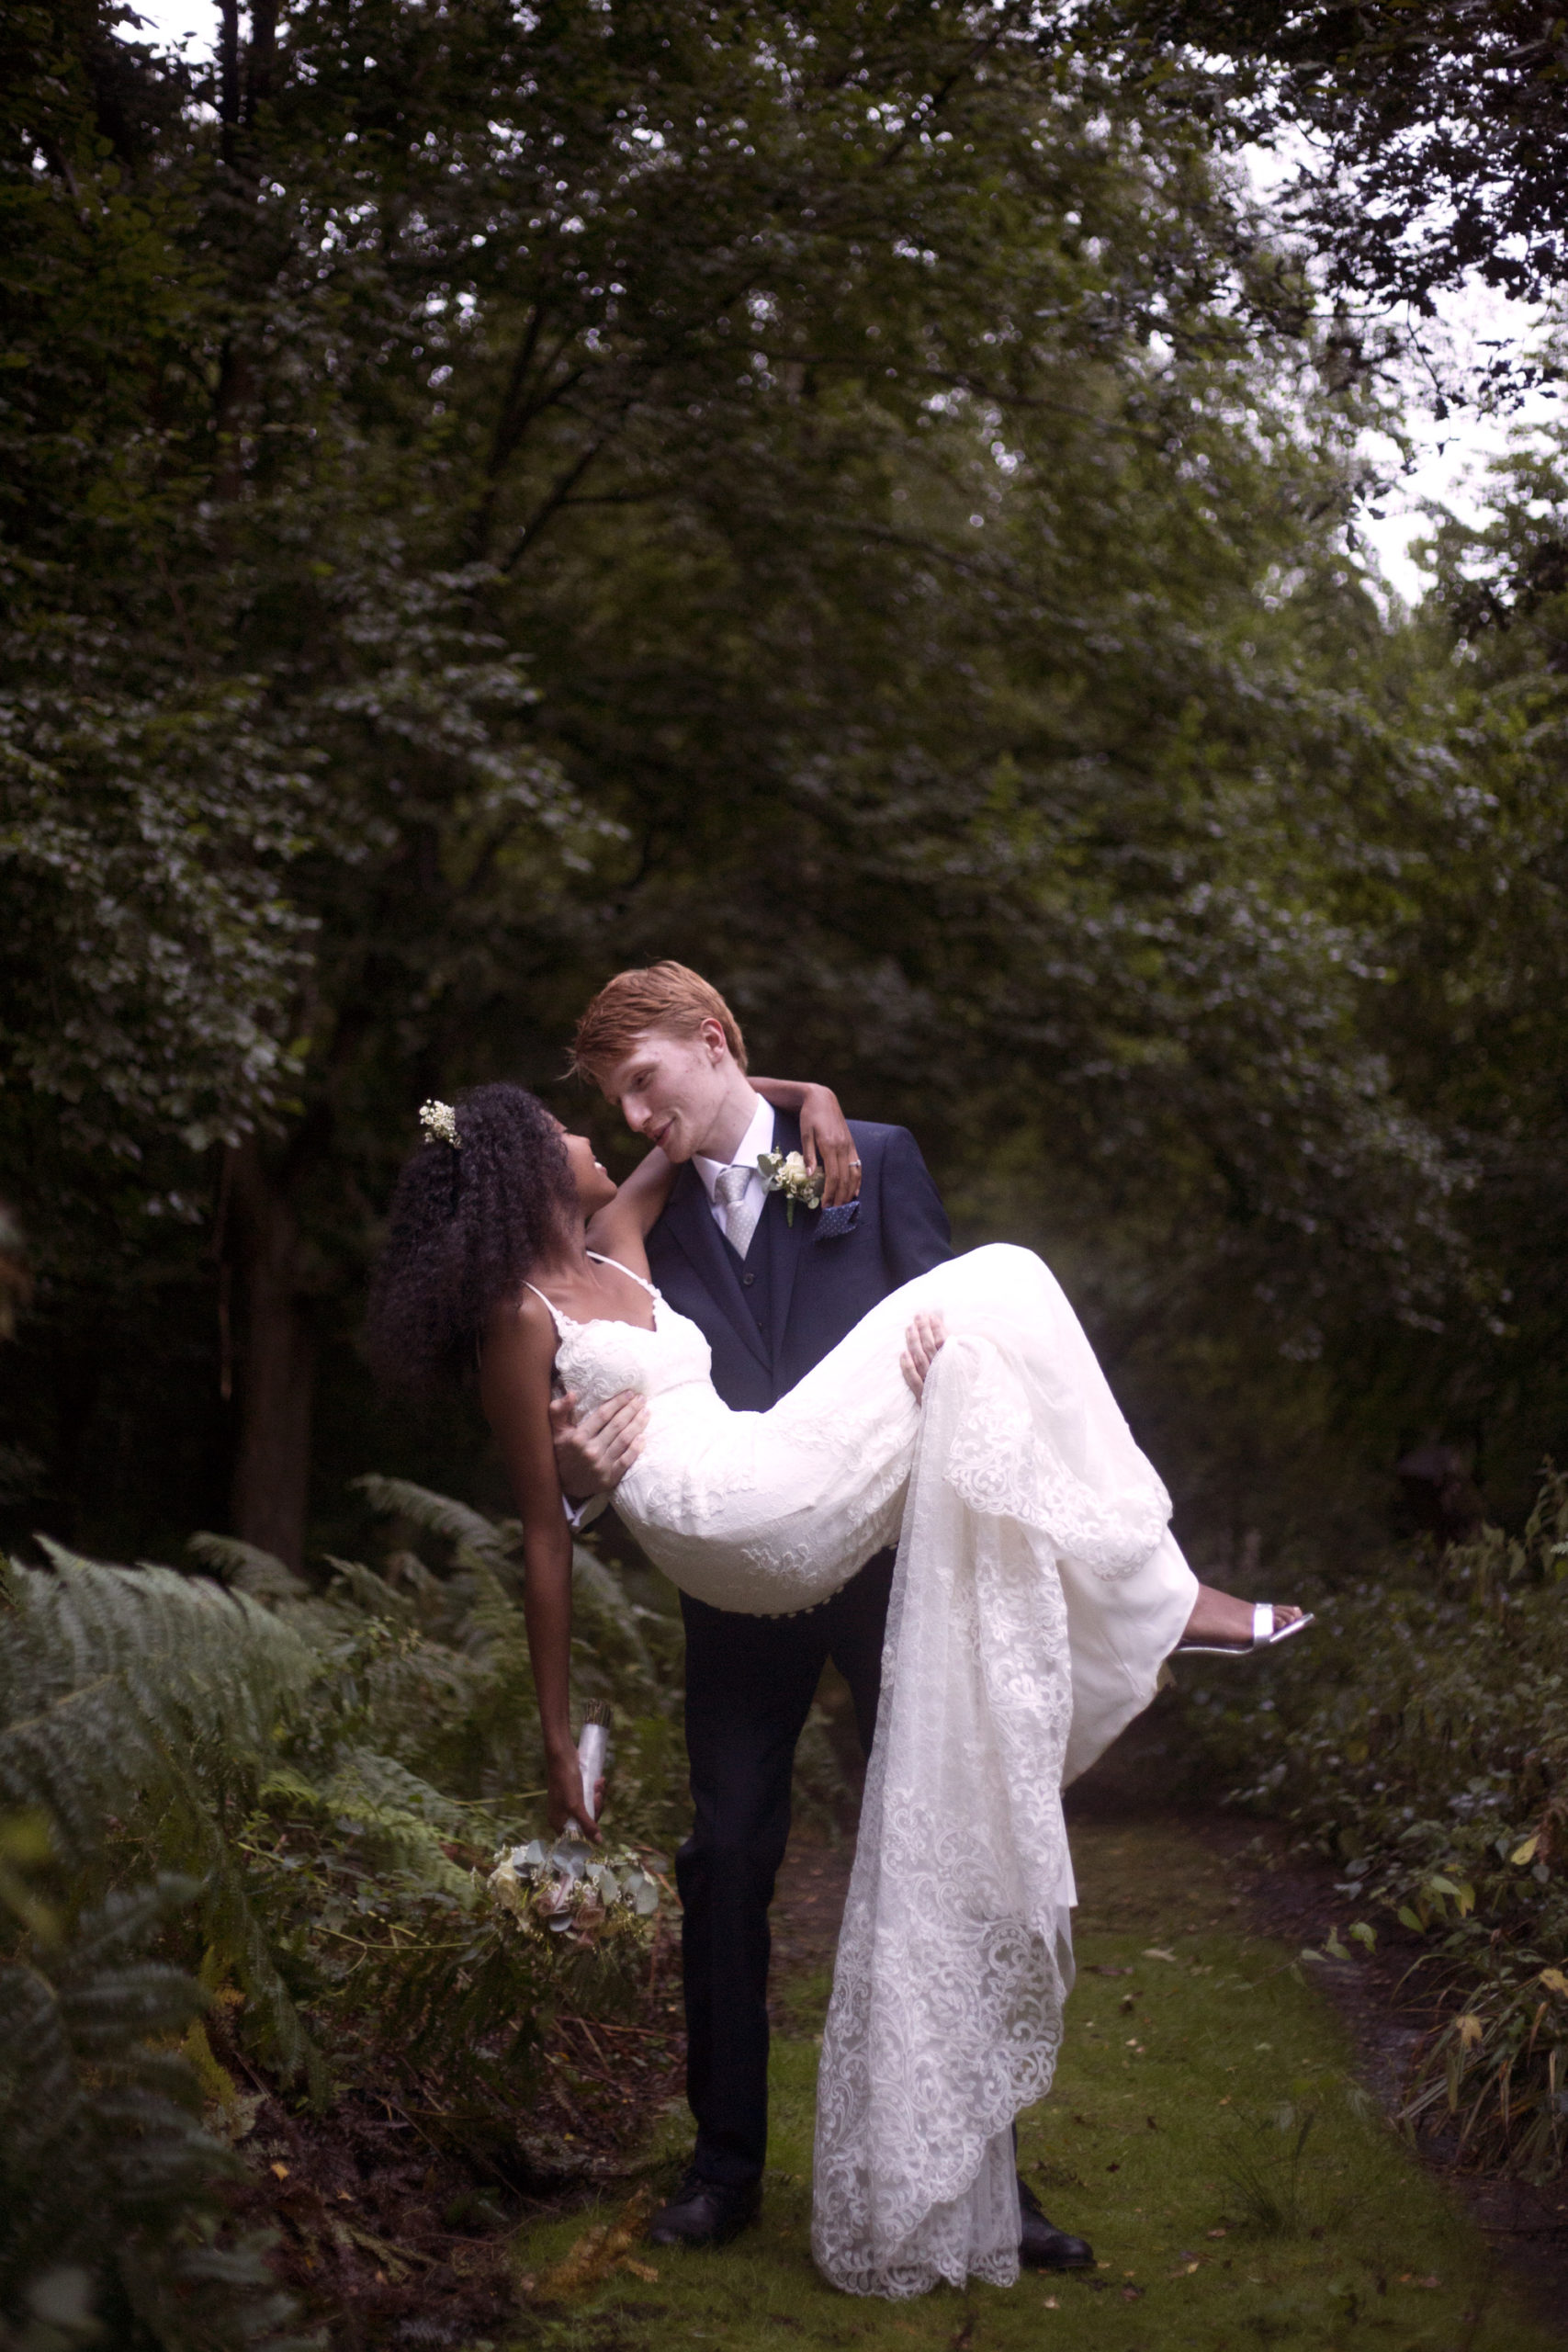 Groom picking up bride in romantic gesture at Cuffley camp outdoor woodland wedding photographer